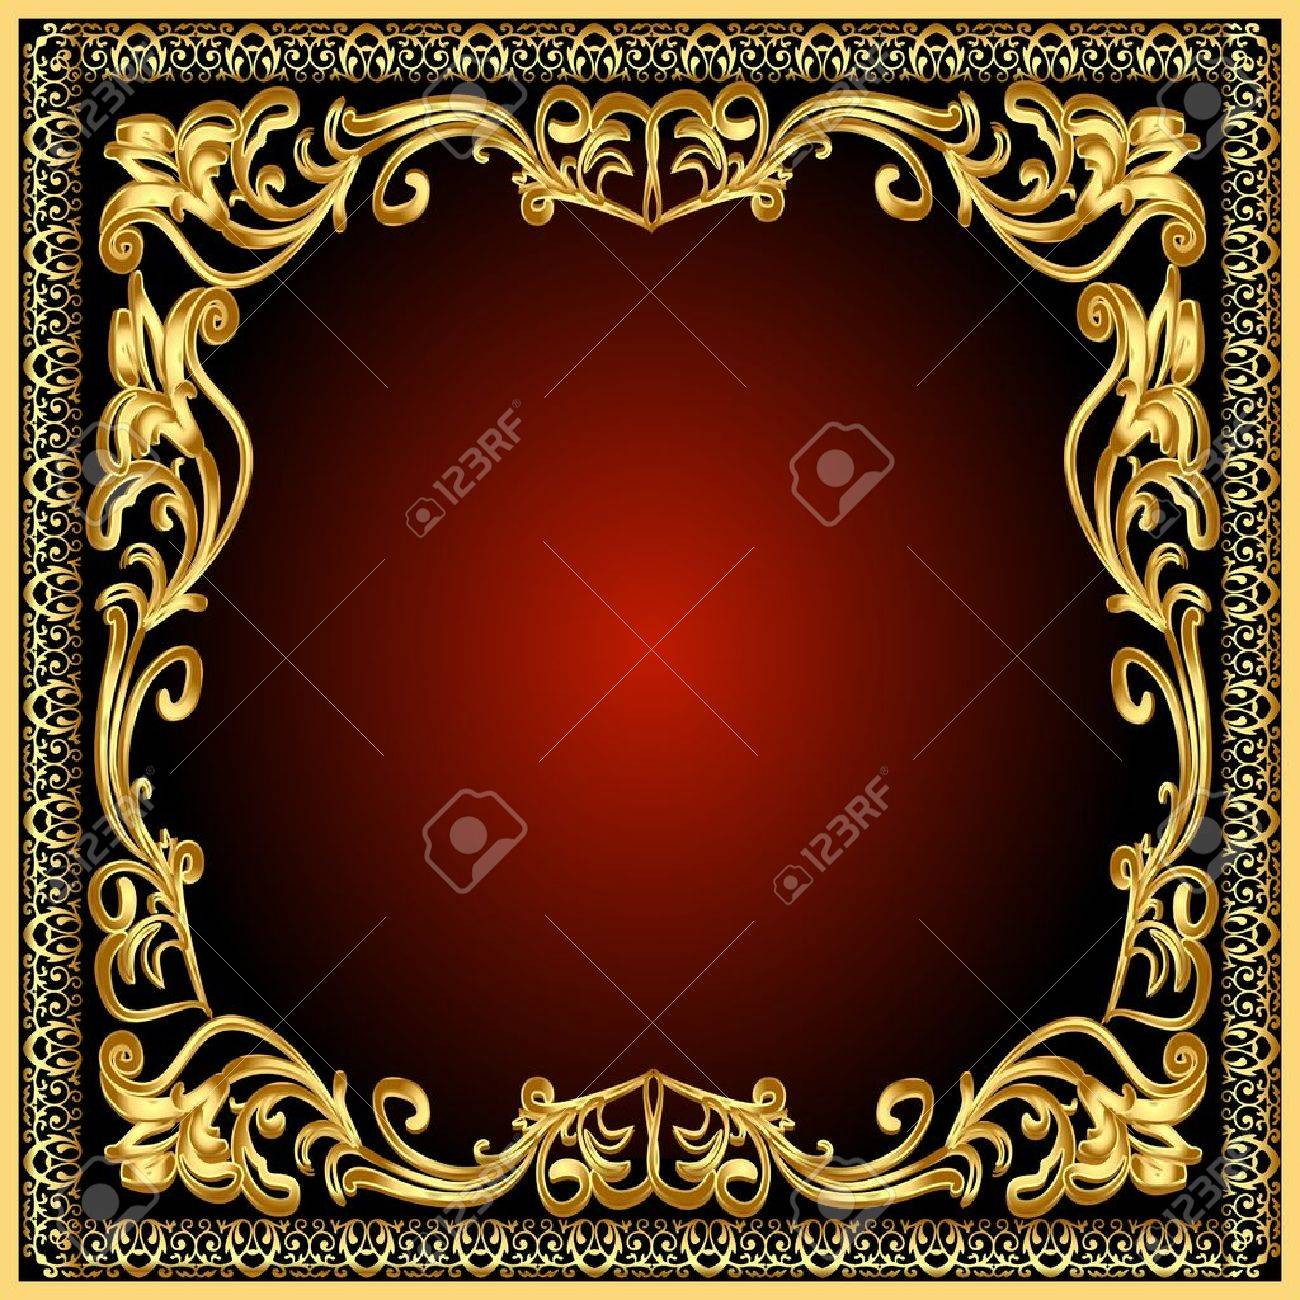 illustration frame background with gold(en) old pattern Stock Vector - 10997789